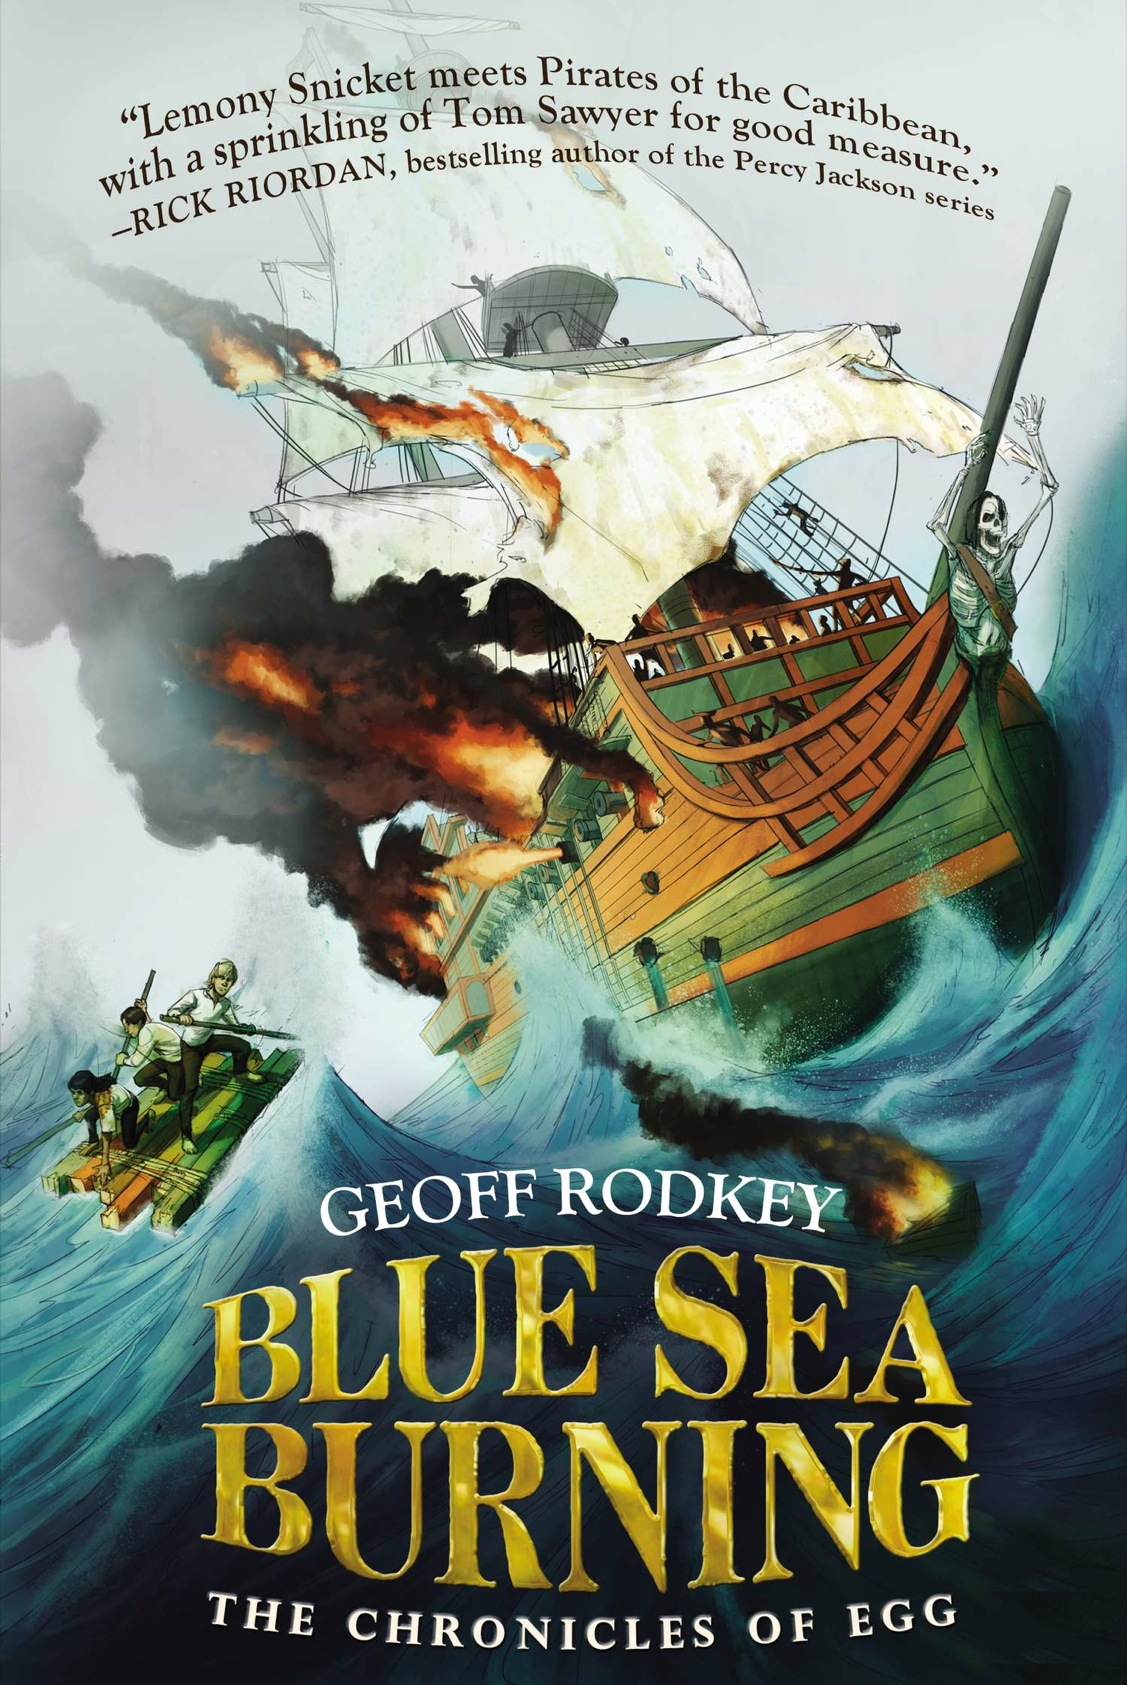 Blue Sea Burning (2014) by Geoff Rodkey